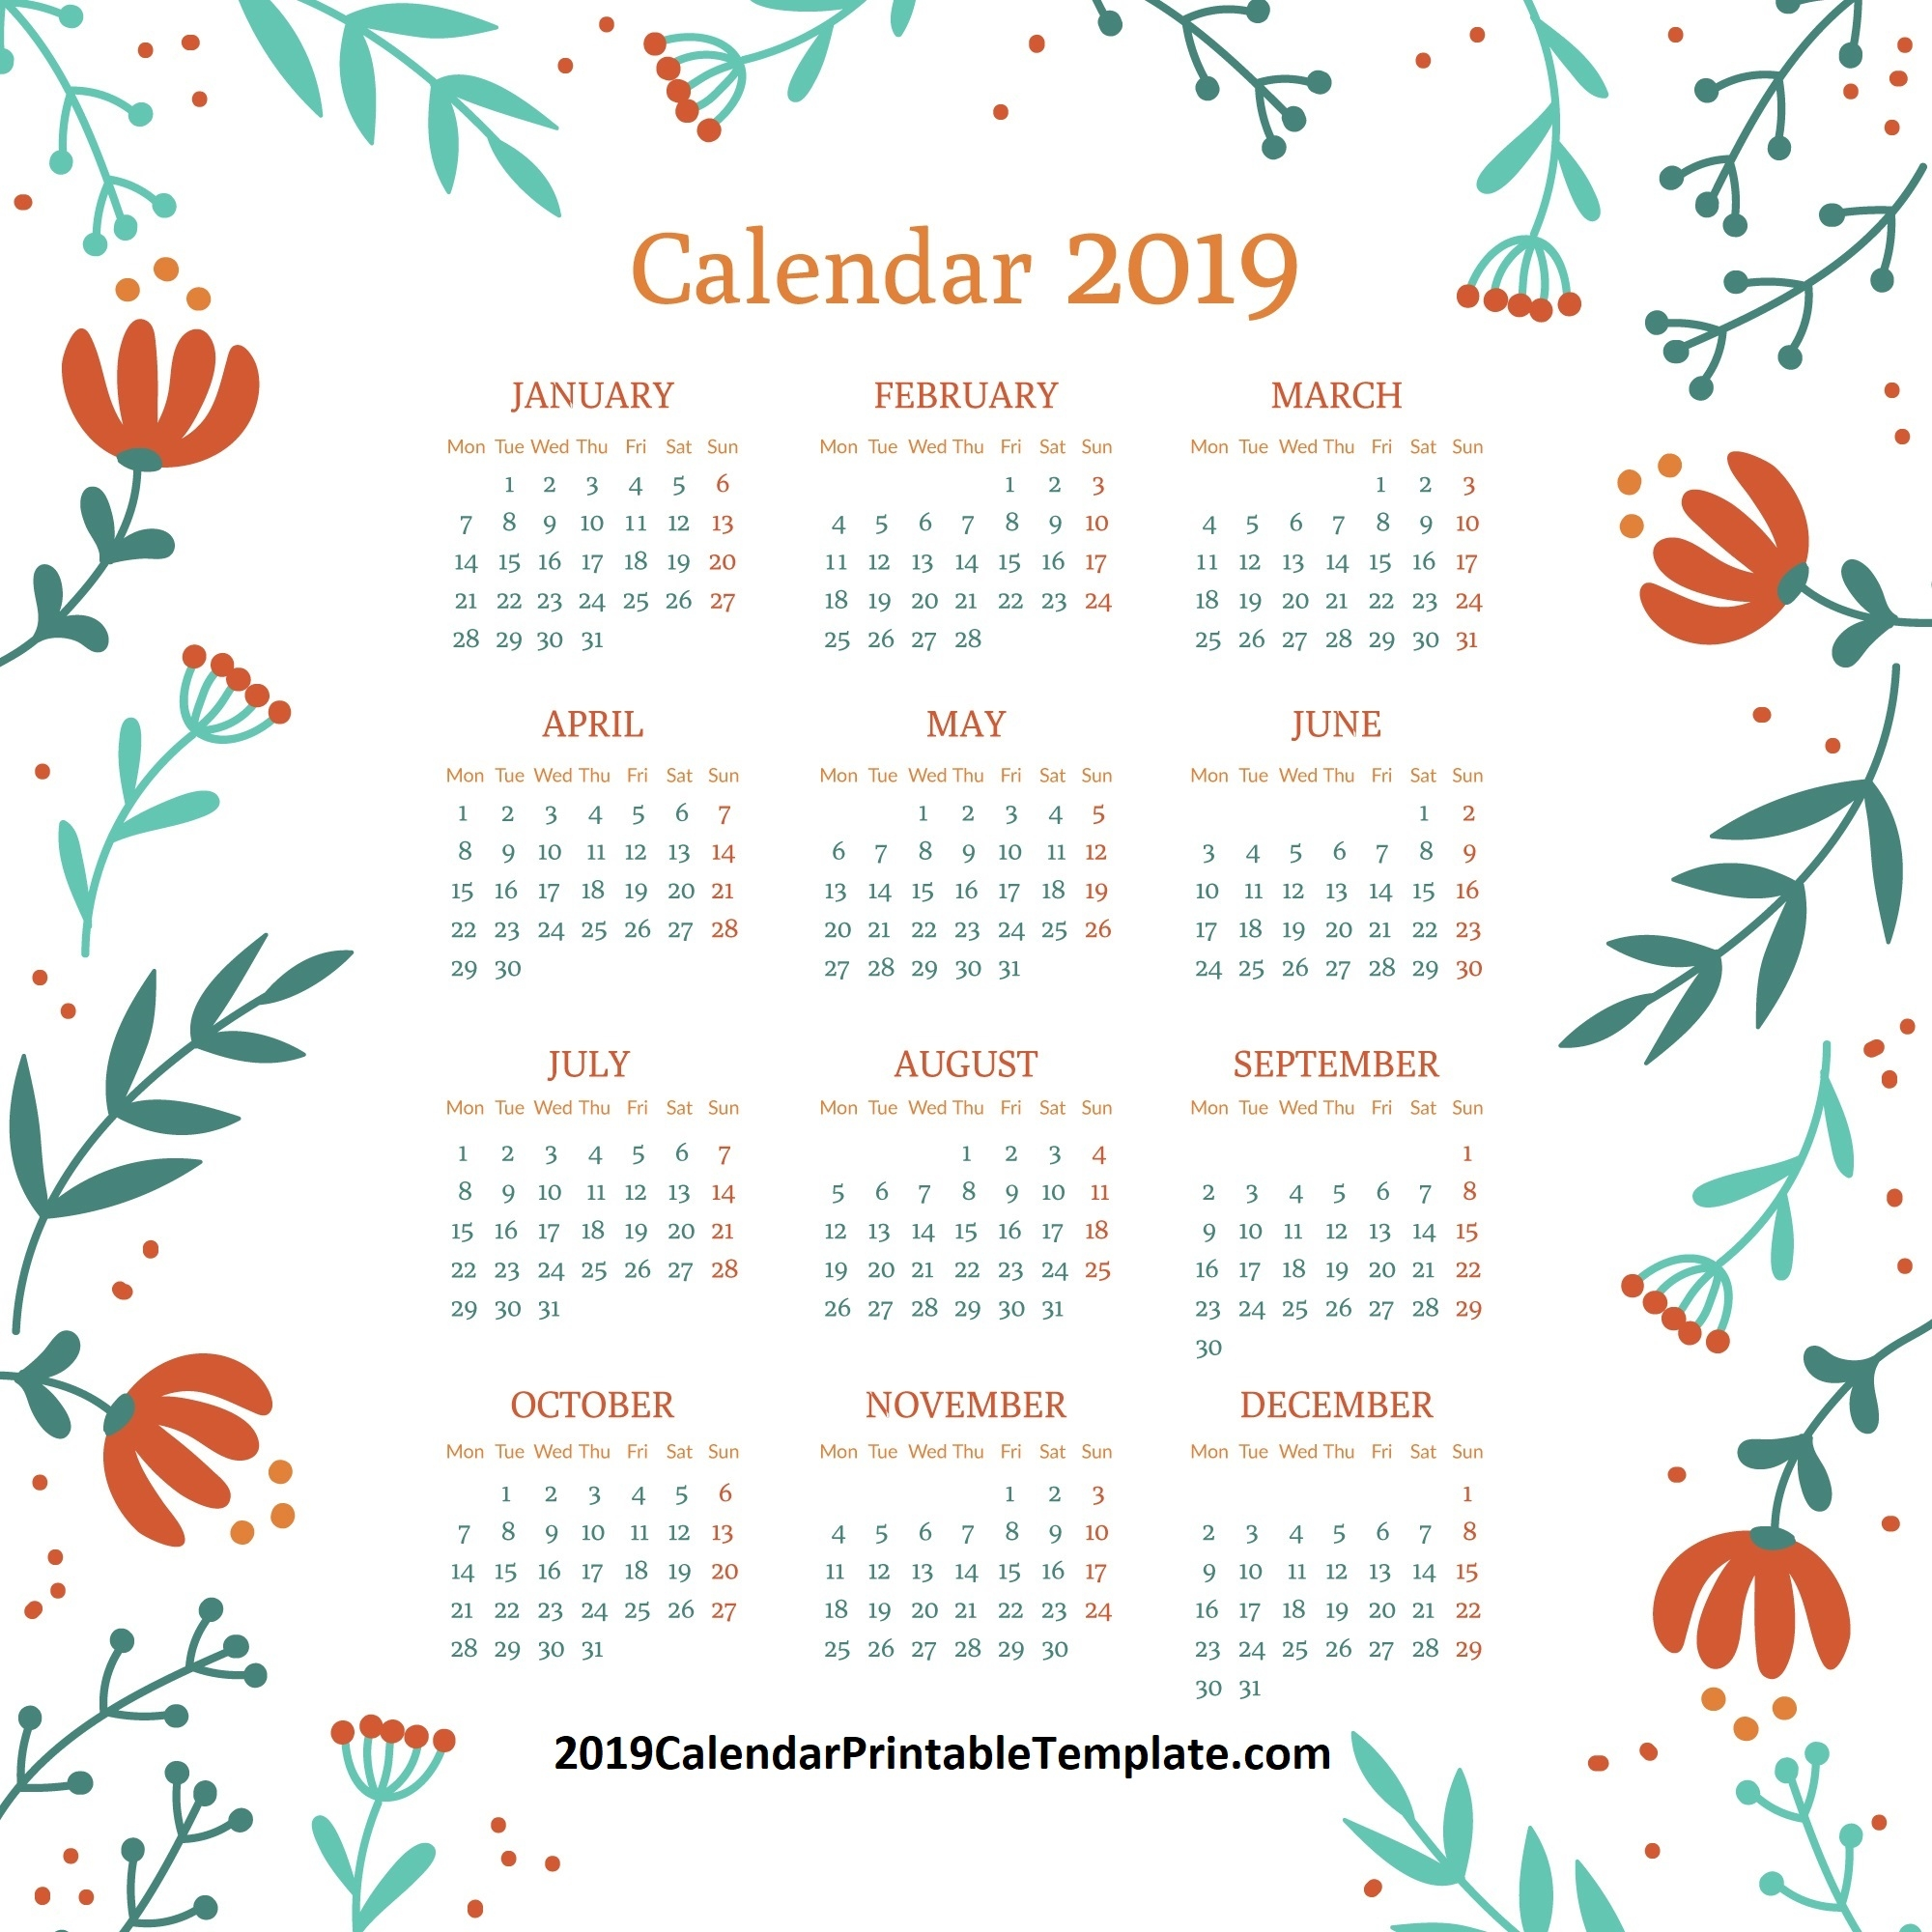 2019 monthly calendar template with holidays::Monthly 2019 Holidays Calendar Templates